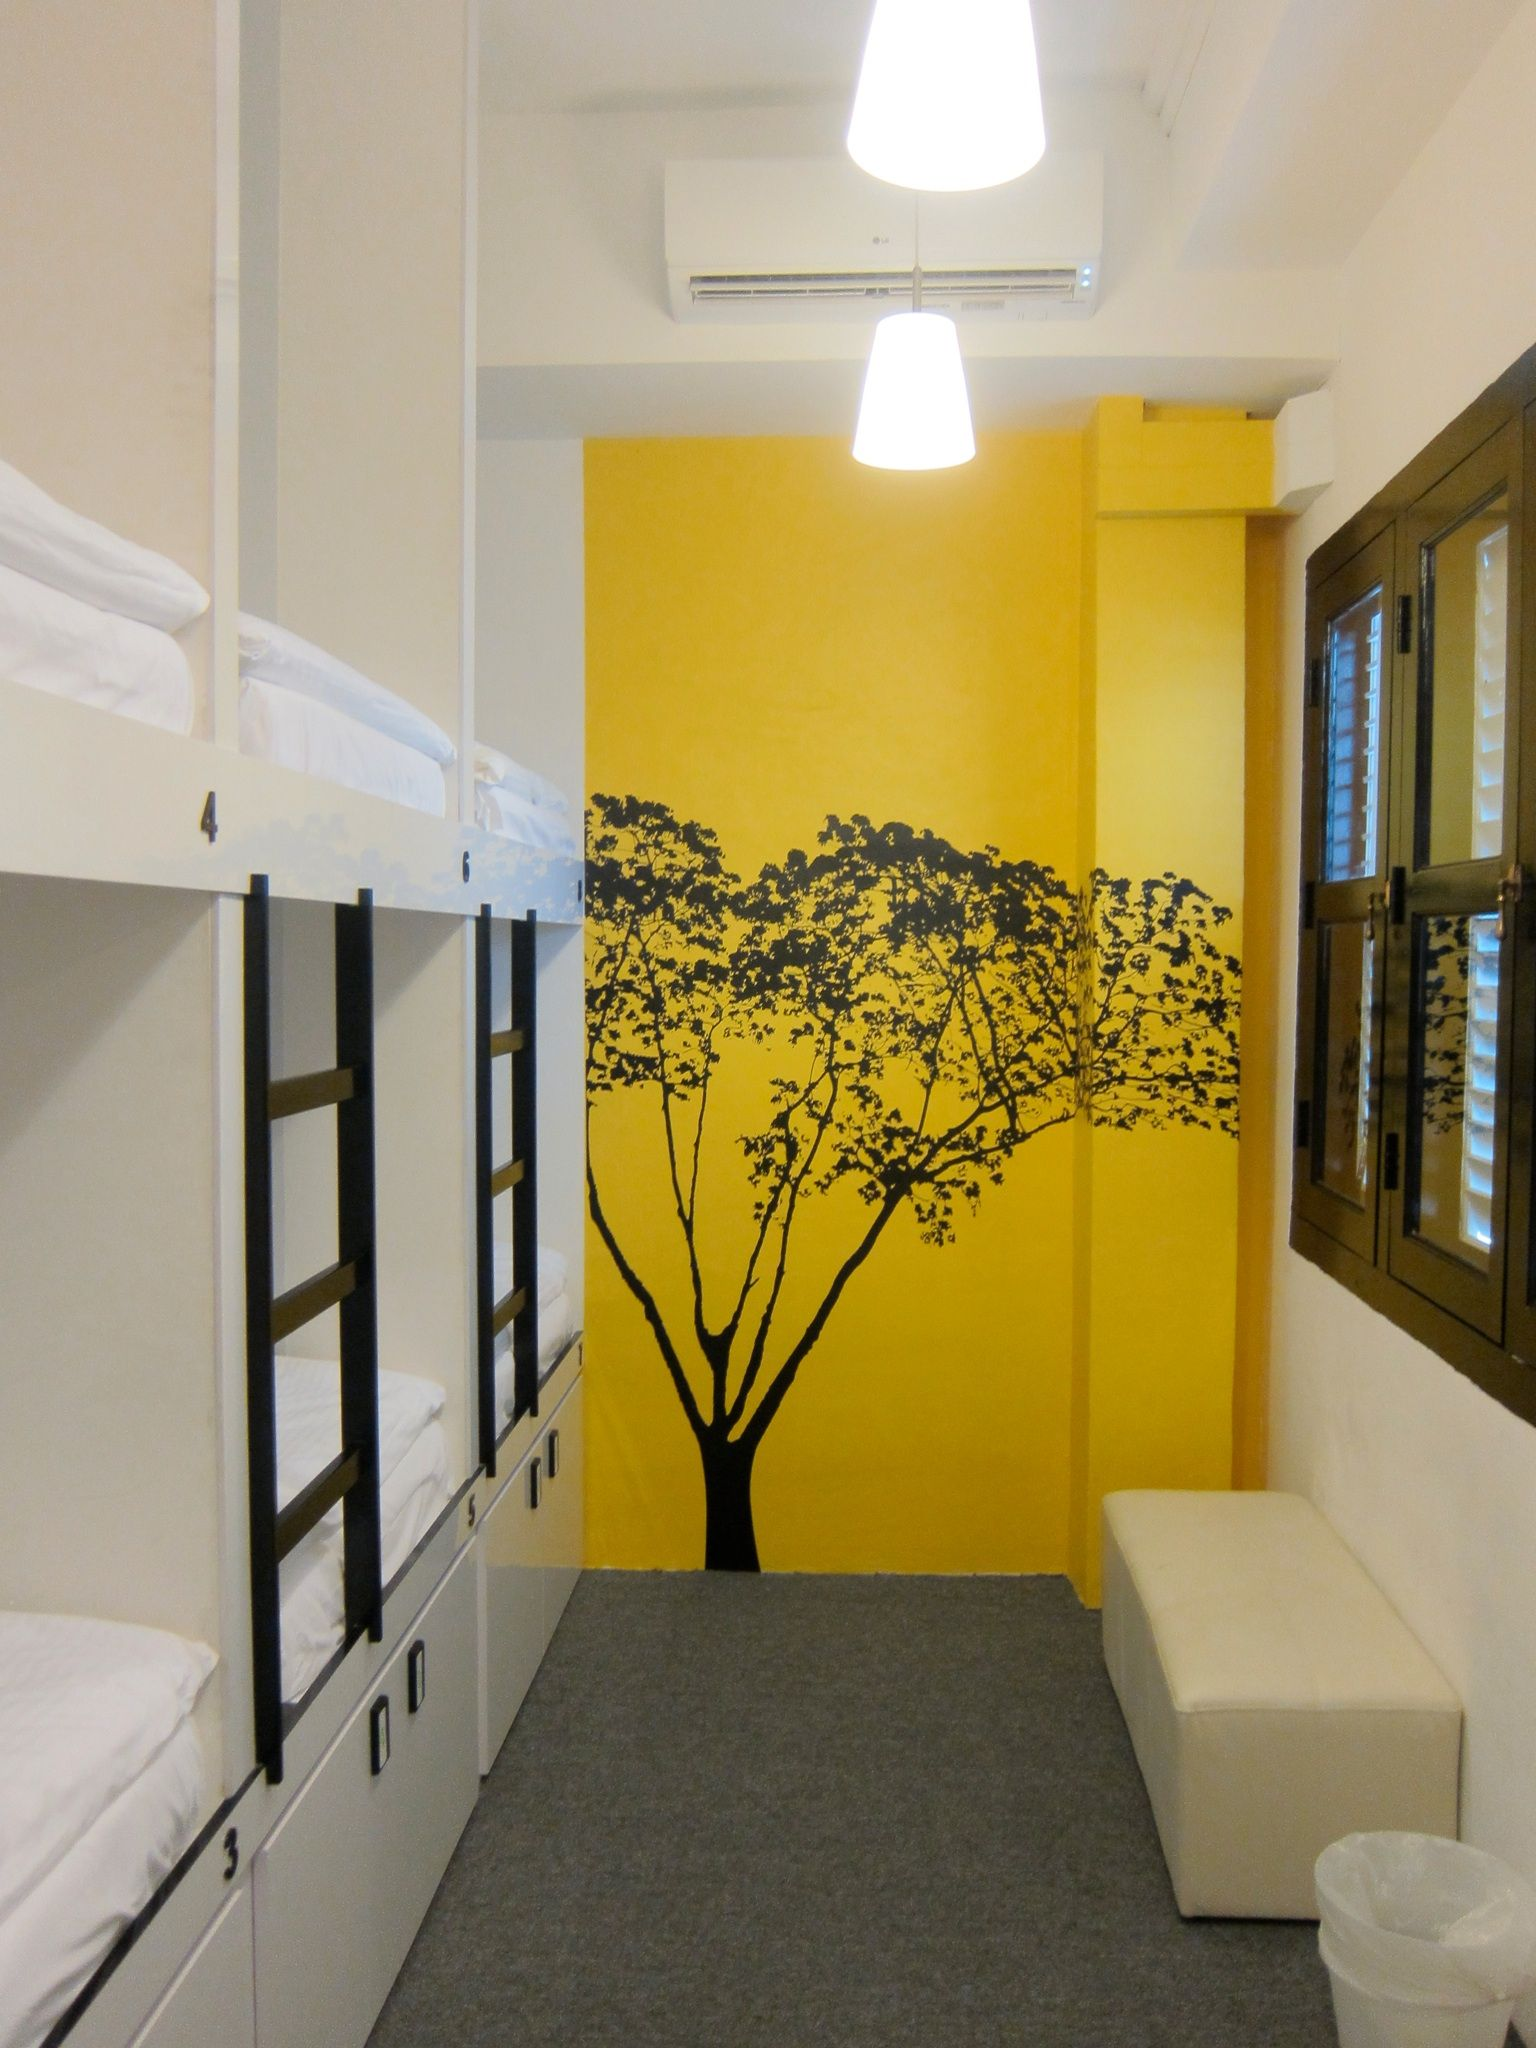 Singapore wink hostel hotel hostel capsule hotel for Decor do hostel